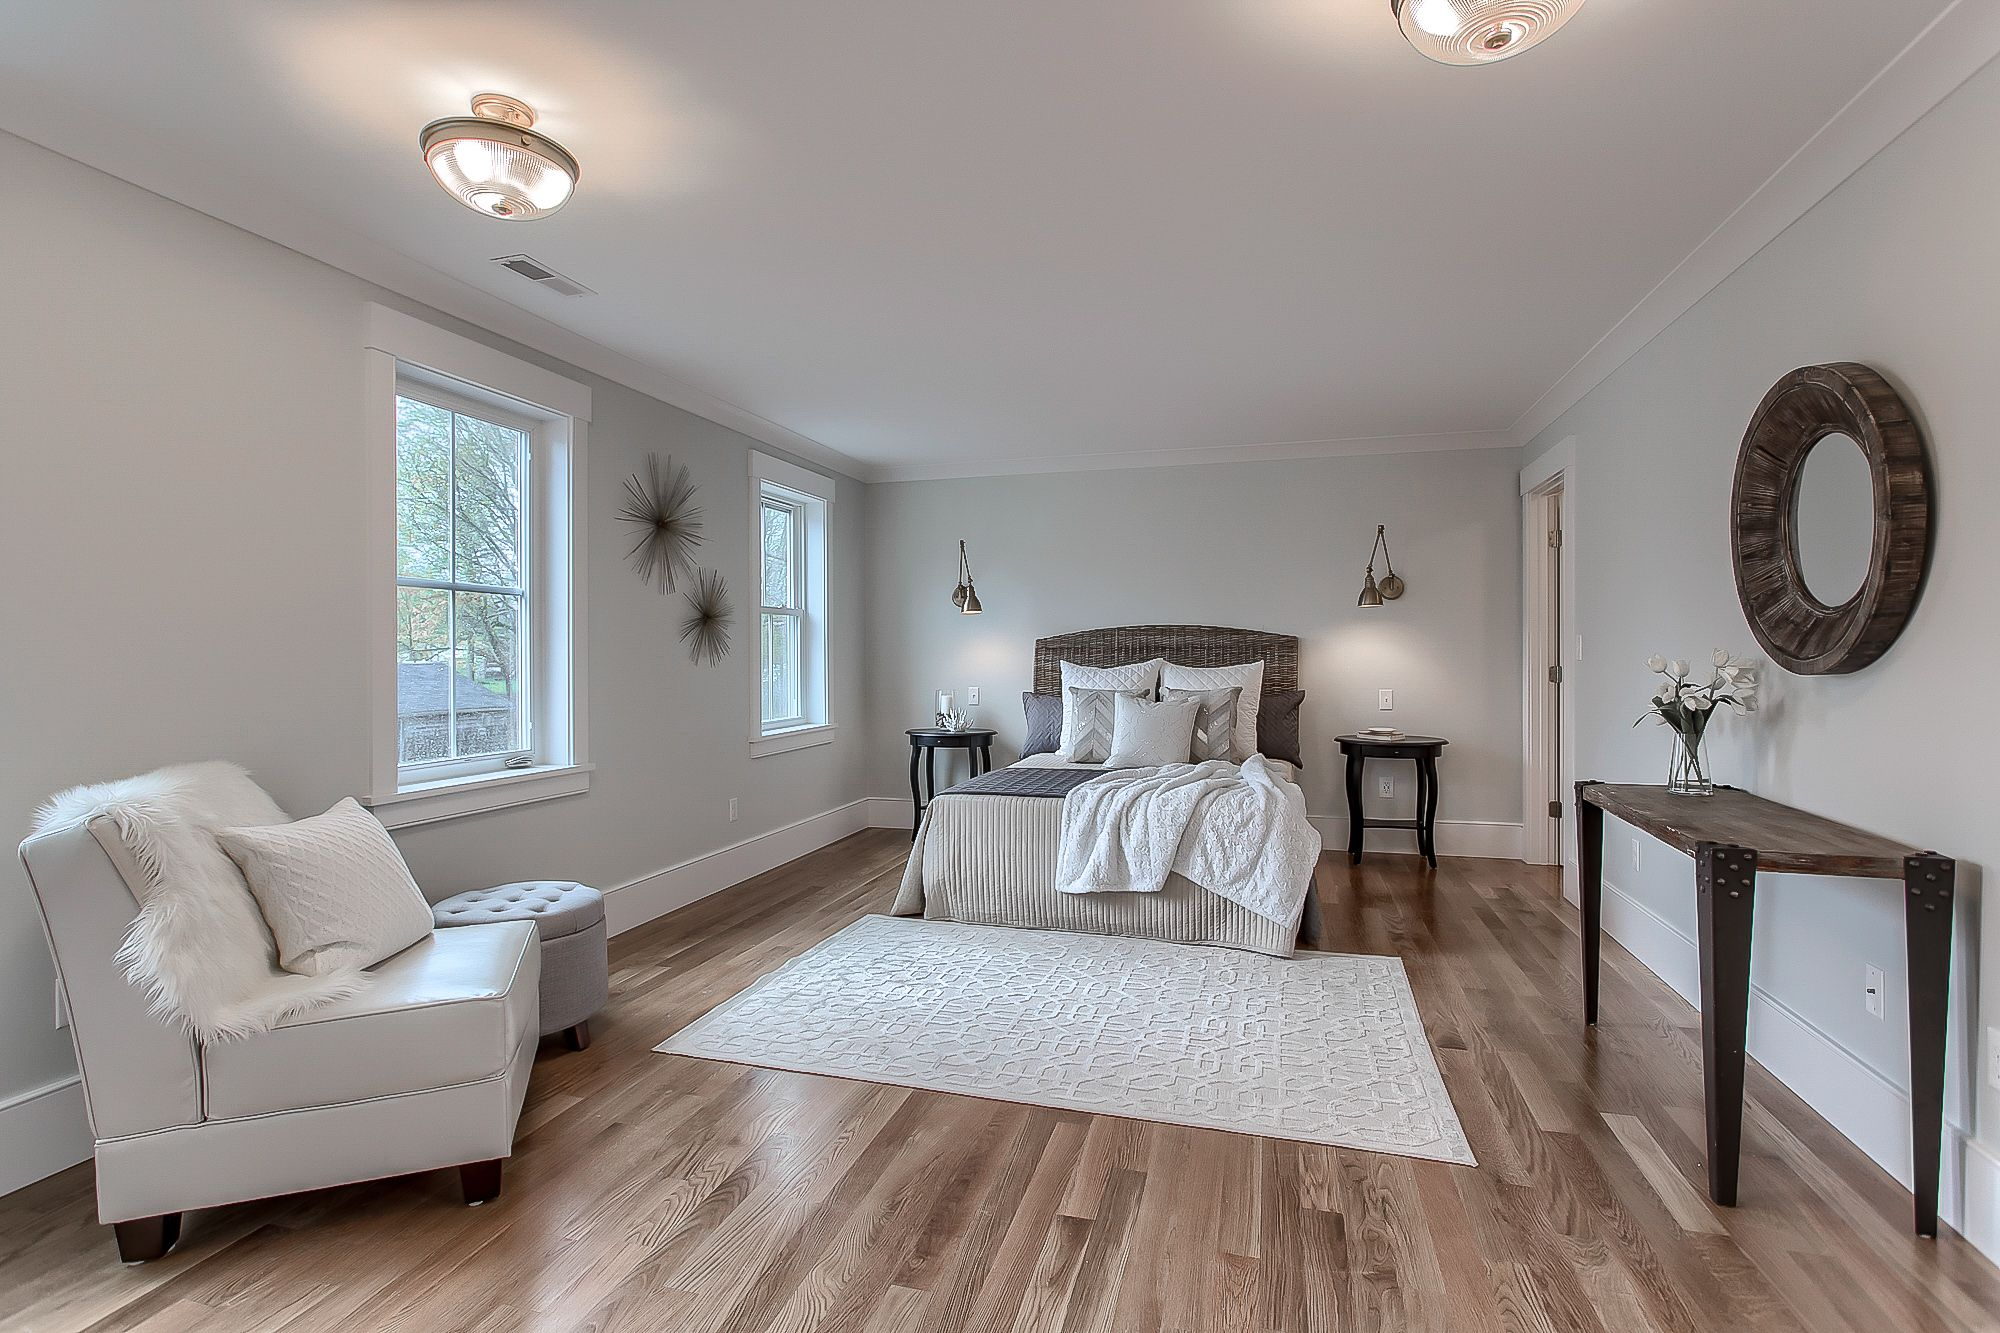 Master bedroom flooring  A beautifully styled master bedroom with gleaming oak floors This